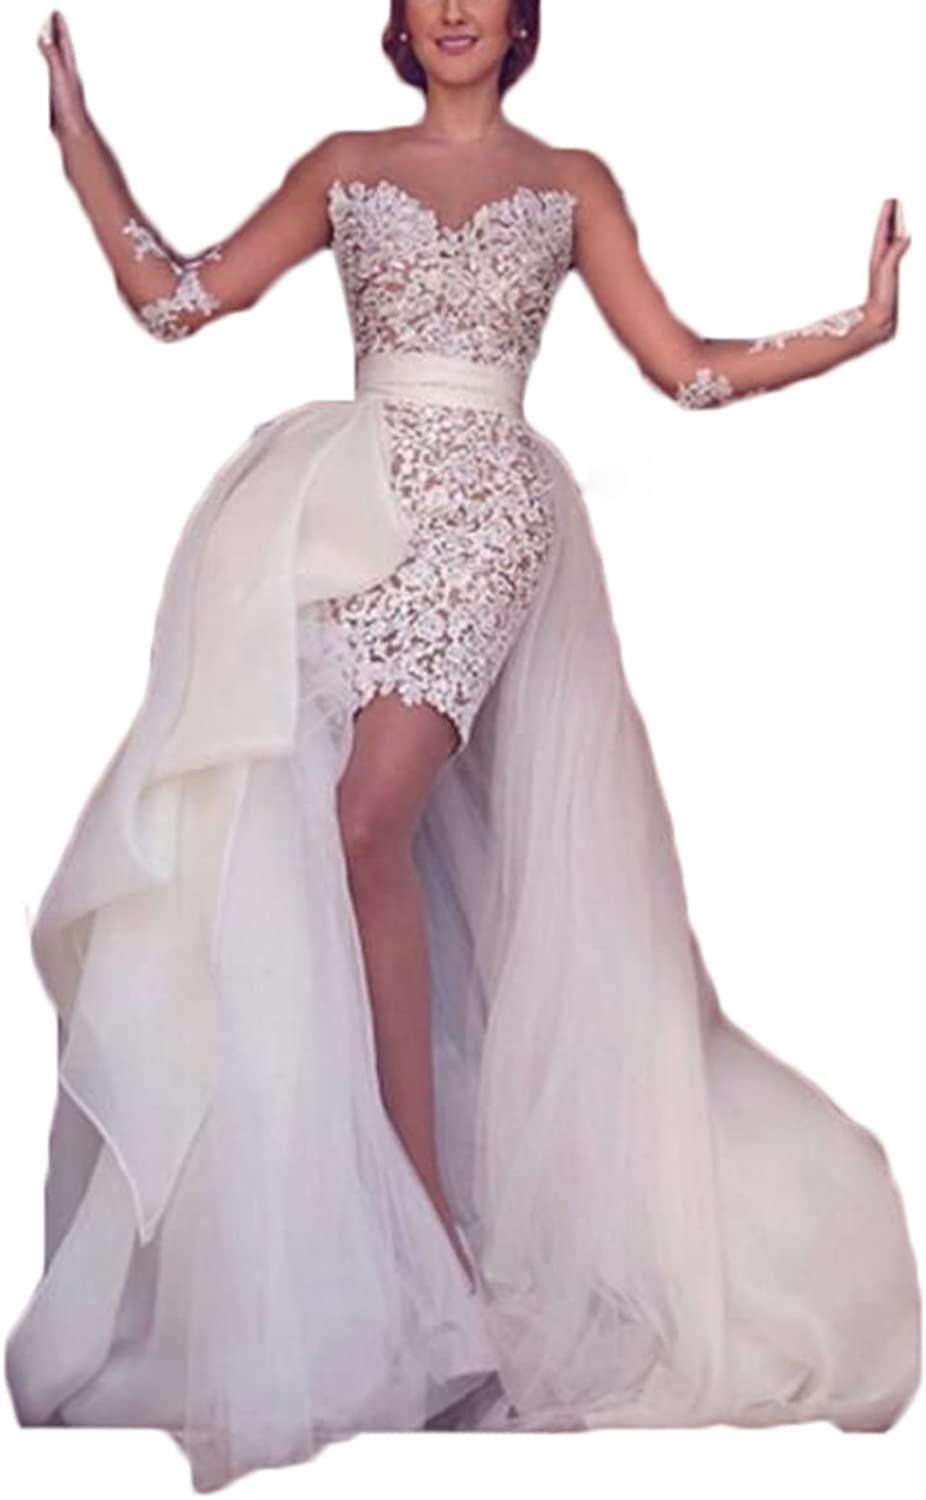 Alilith.Z Sexy Illusion Lace Wedding Dresses for Bride Long Sleeve Bridal Gowns Short Mermaid with Detachable Train